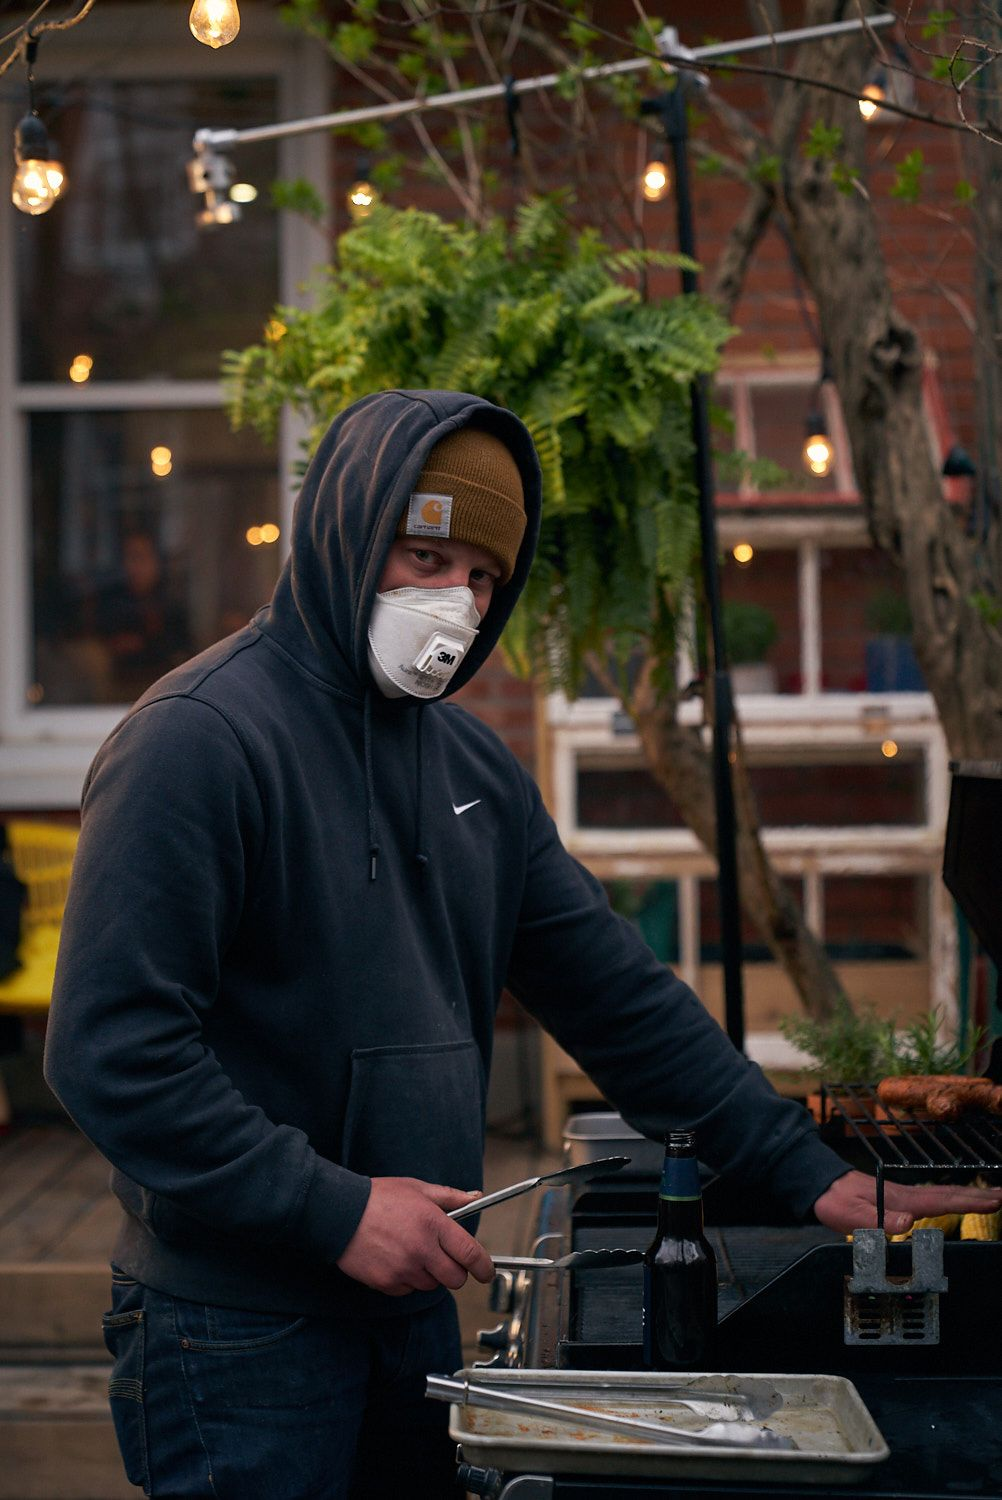 assistant grilling on barbecue while wearing masks in behind the scenes for shoot photographed by Bruno Florin for Belle Gueule with Forsman & Bodenfors